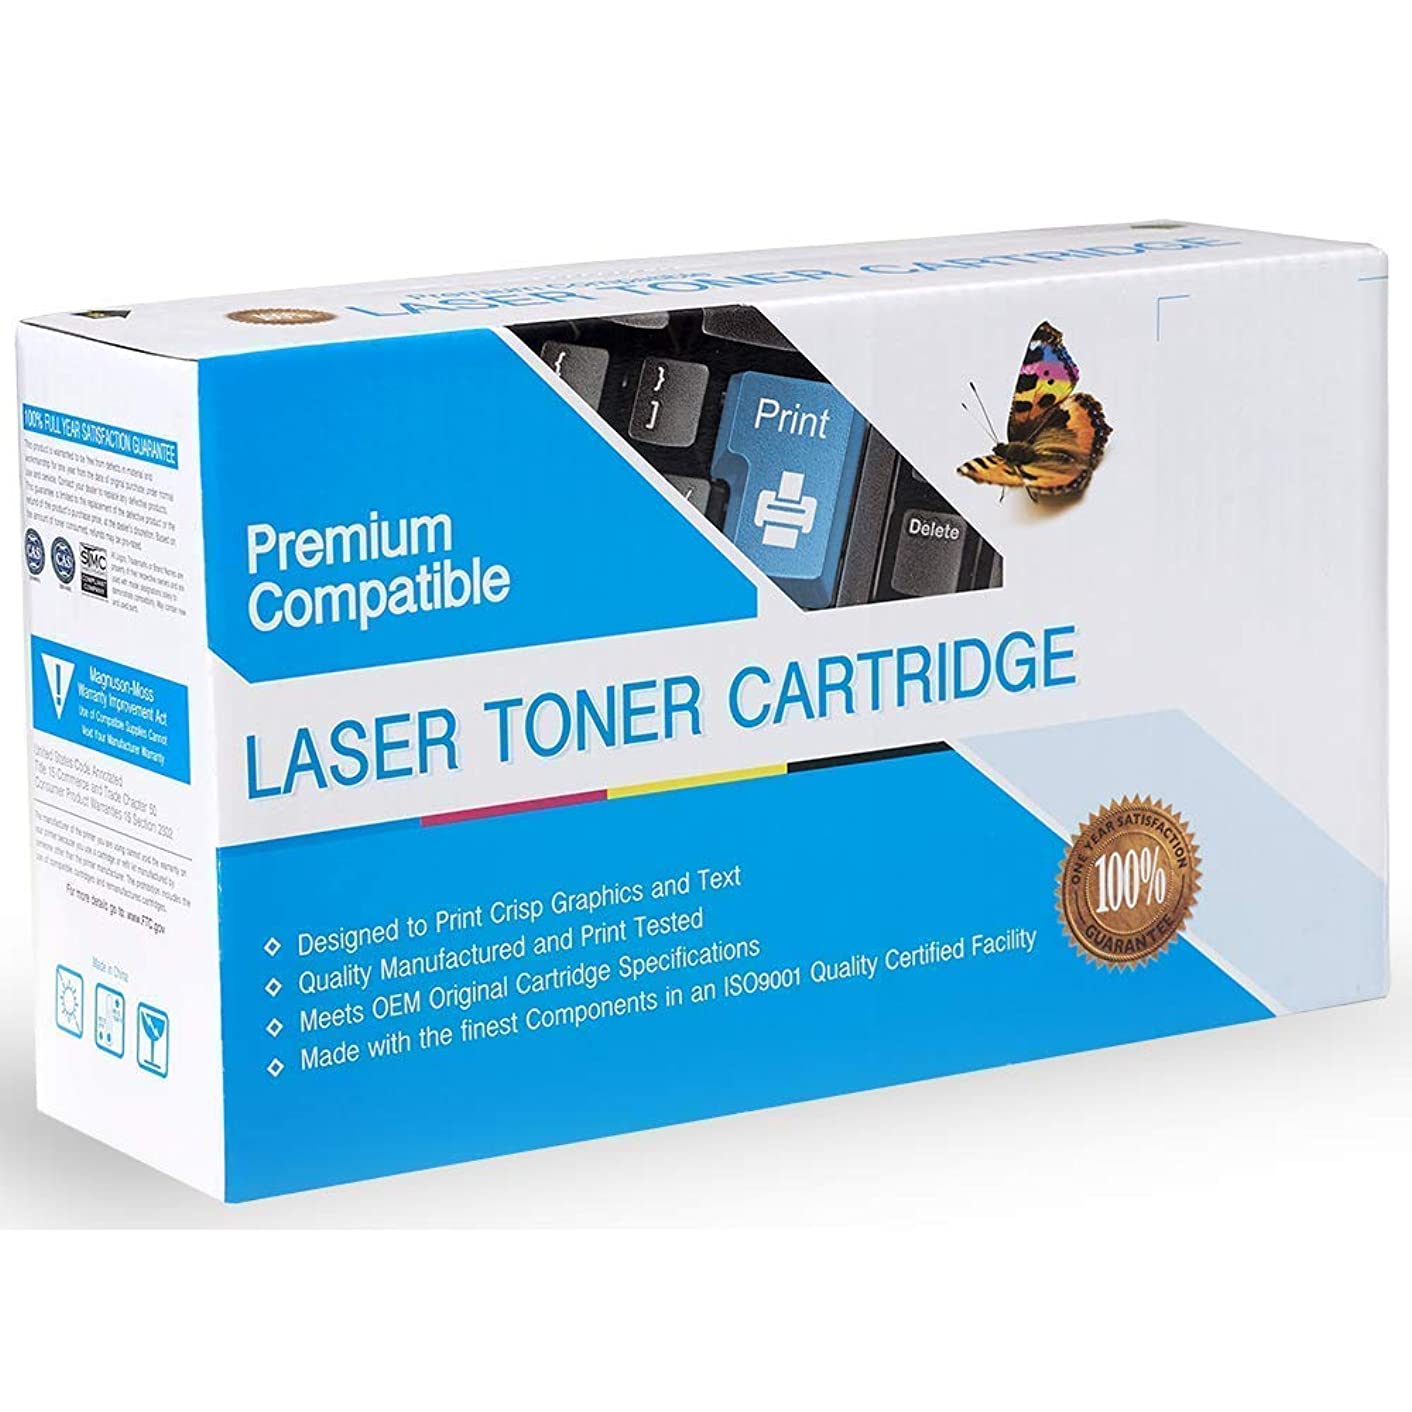 Rose Office Supply Compatible Ink Cartridge Replacement for HP CE400A, 507A, Works with: Color Laserjet Enterprise 500 Color M551, M551DN, M551N, M551XH, MFP 570DN, MFP M575DN, MFP M575F Black